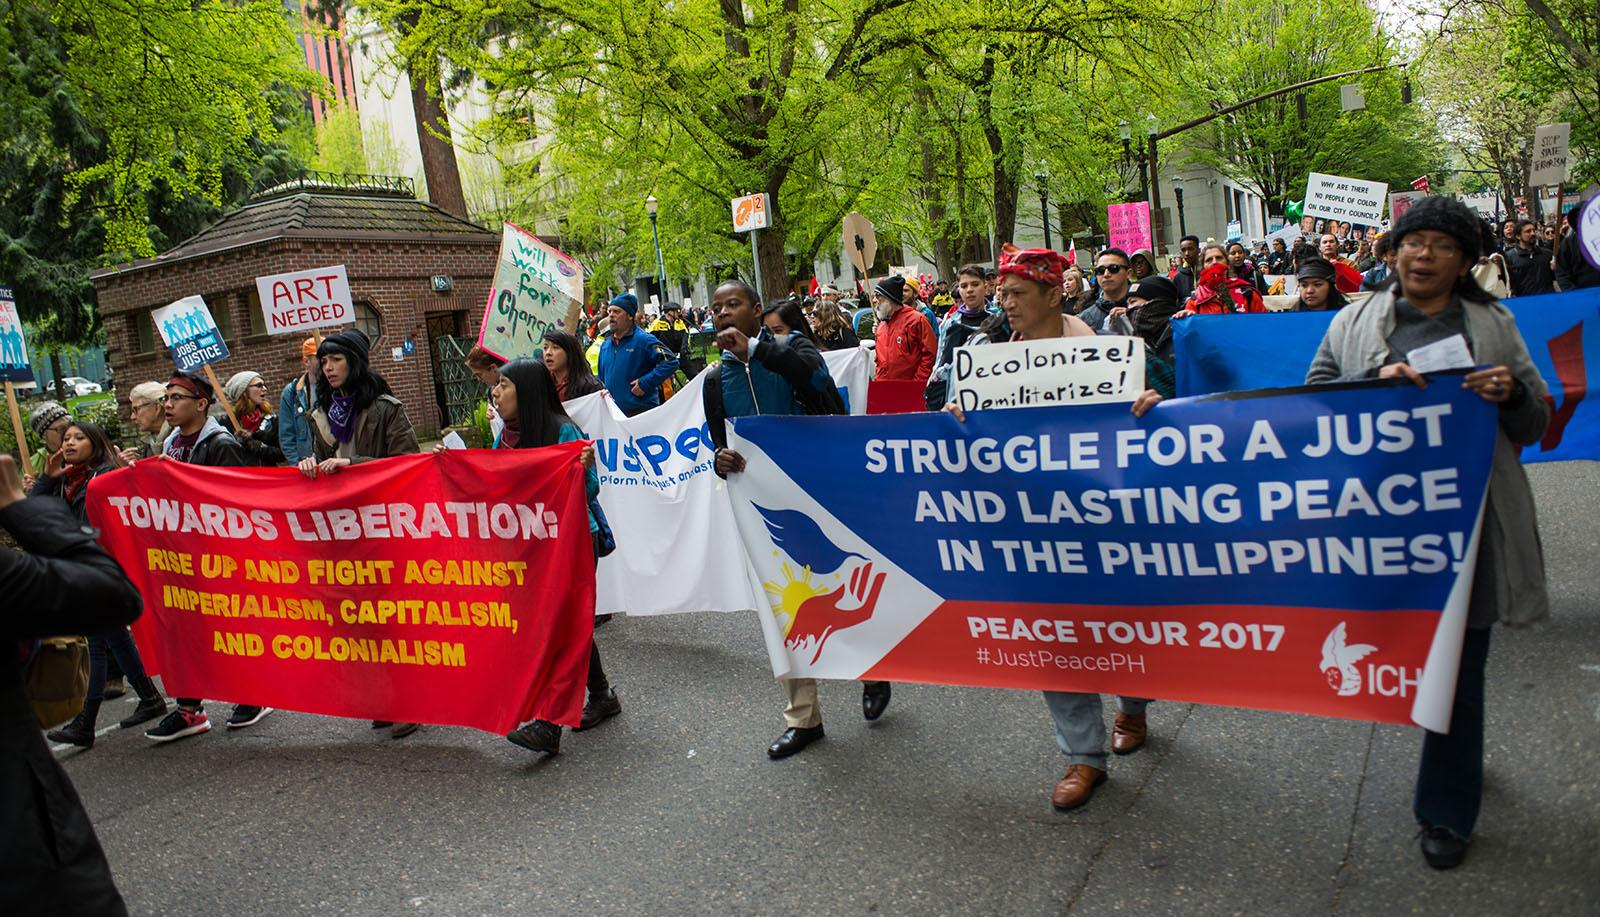 Hundreds gathered at Shemanski Park in Southwest Portland for a May Day political rally and march in support of workers' rights, immigrants, and several other causes. The march took a violent turn at the hands of some participants, ultimately prompting Portland Police to pull the permit. (KATU photo May 1, 2017 by Tristan Fortsch)